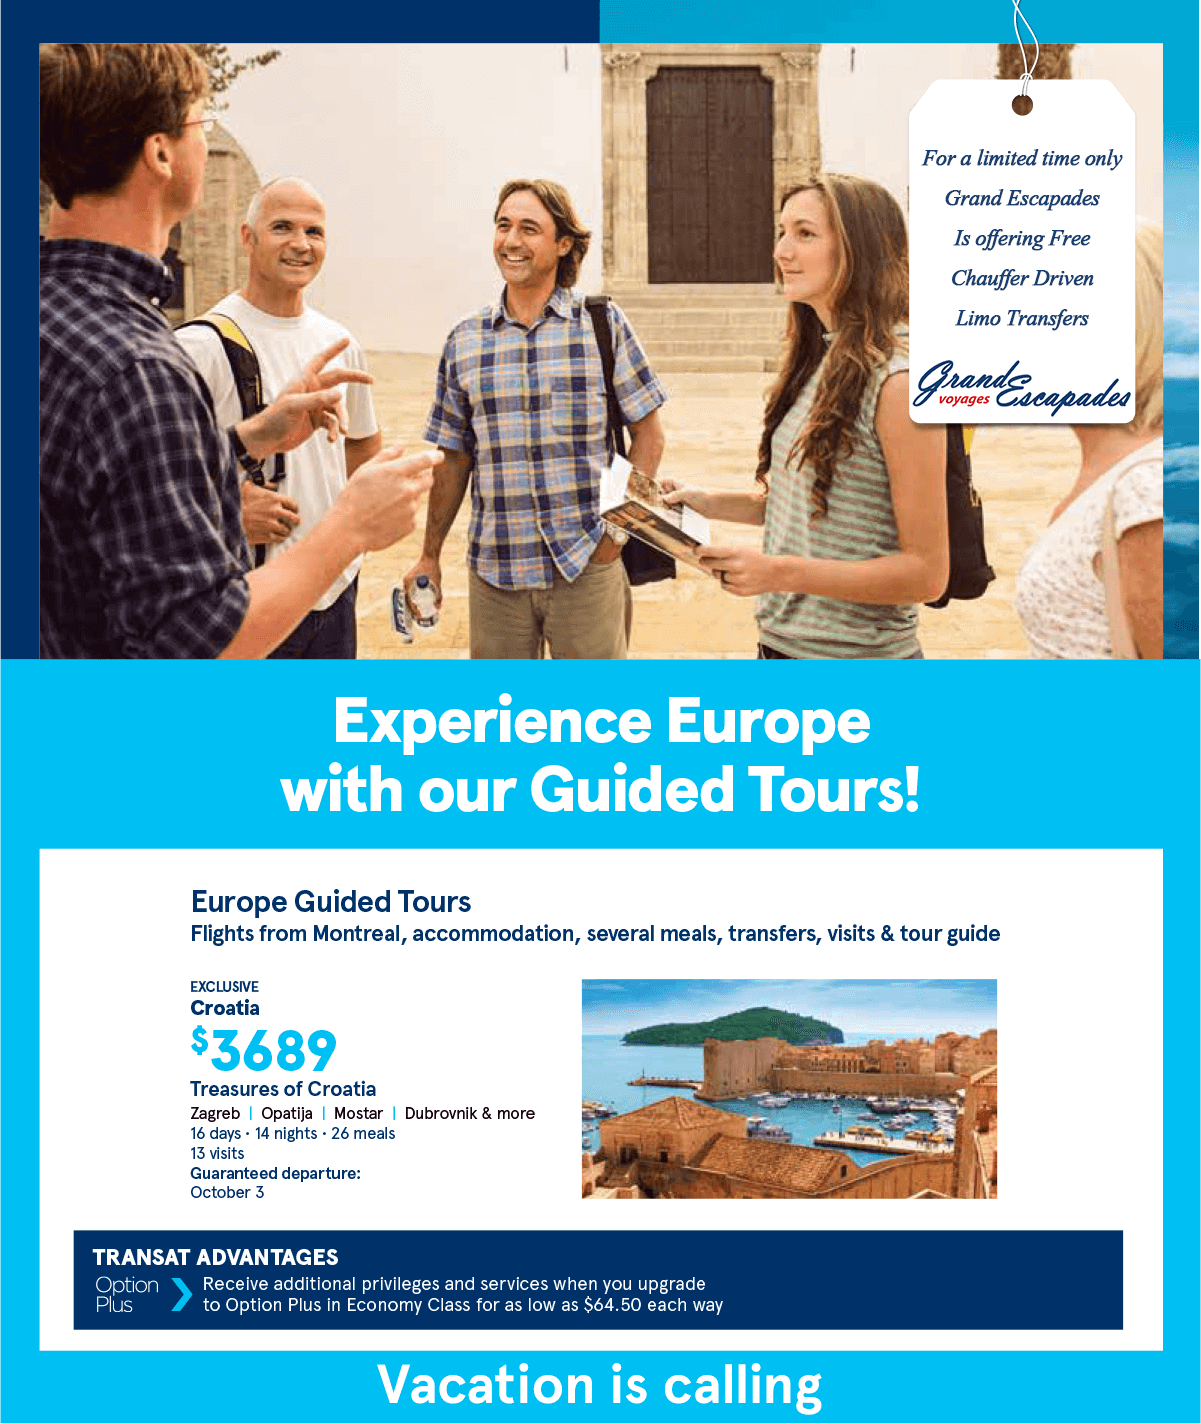 Experience Europe with our Guided Tours!